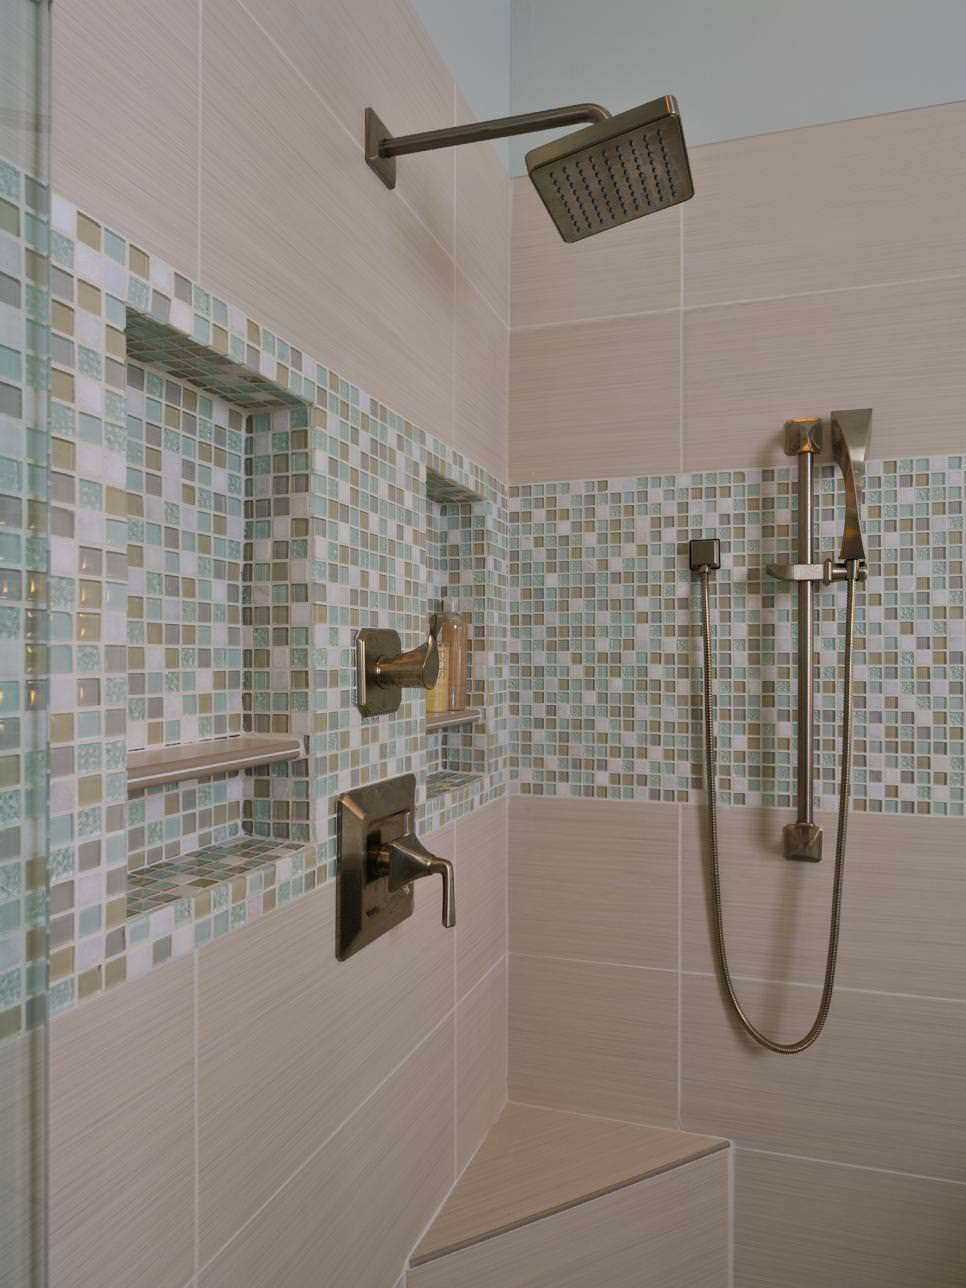 24 mosaic bathroom ideas designs design trends Mosaic tile designs for shower